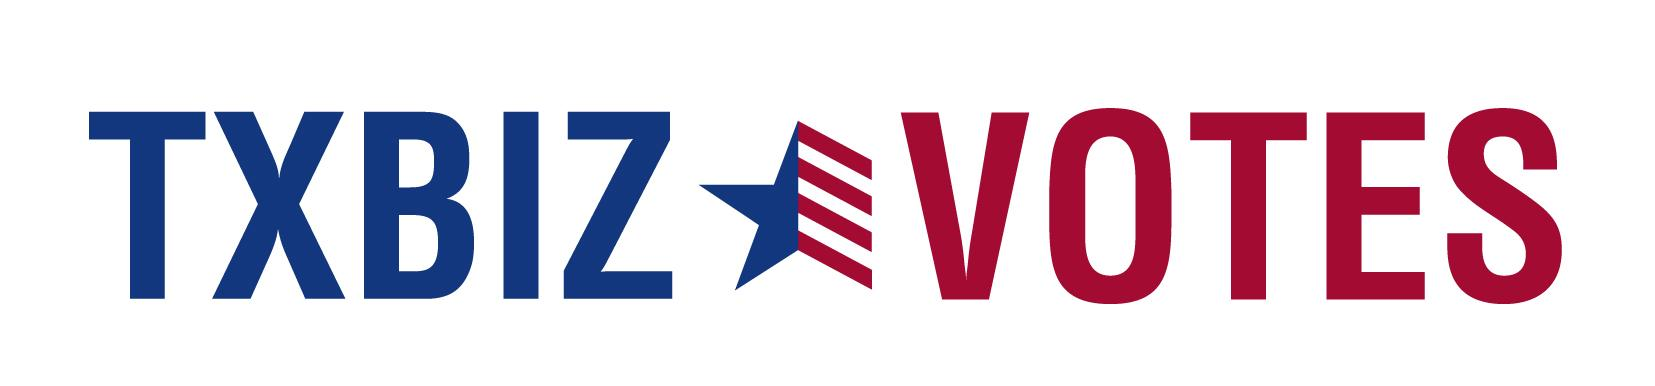 Graphic with TXBIZ VOTES logo